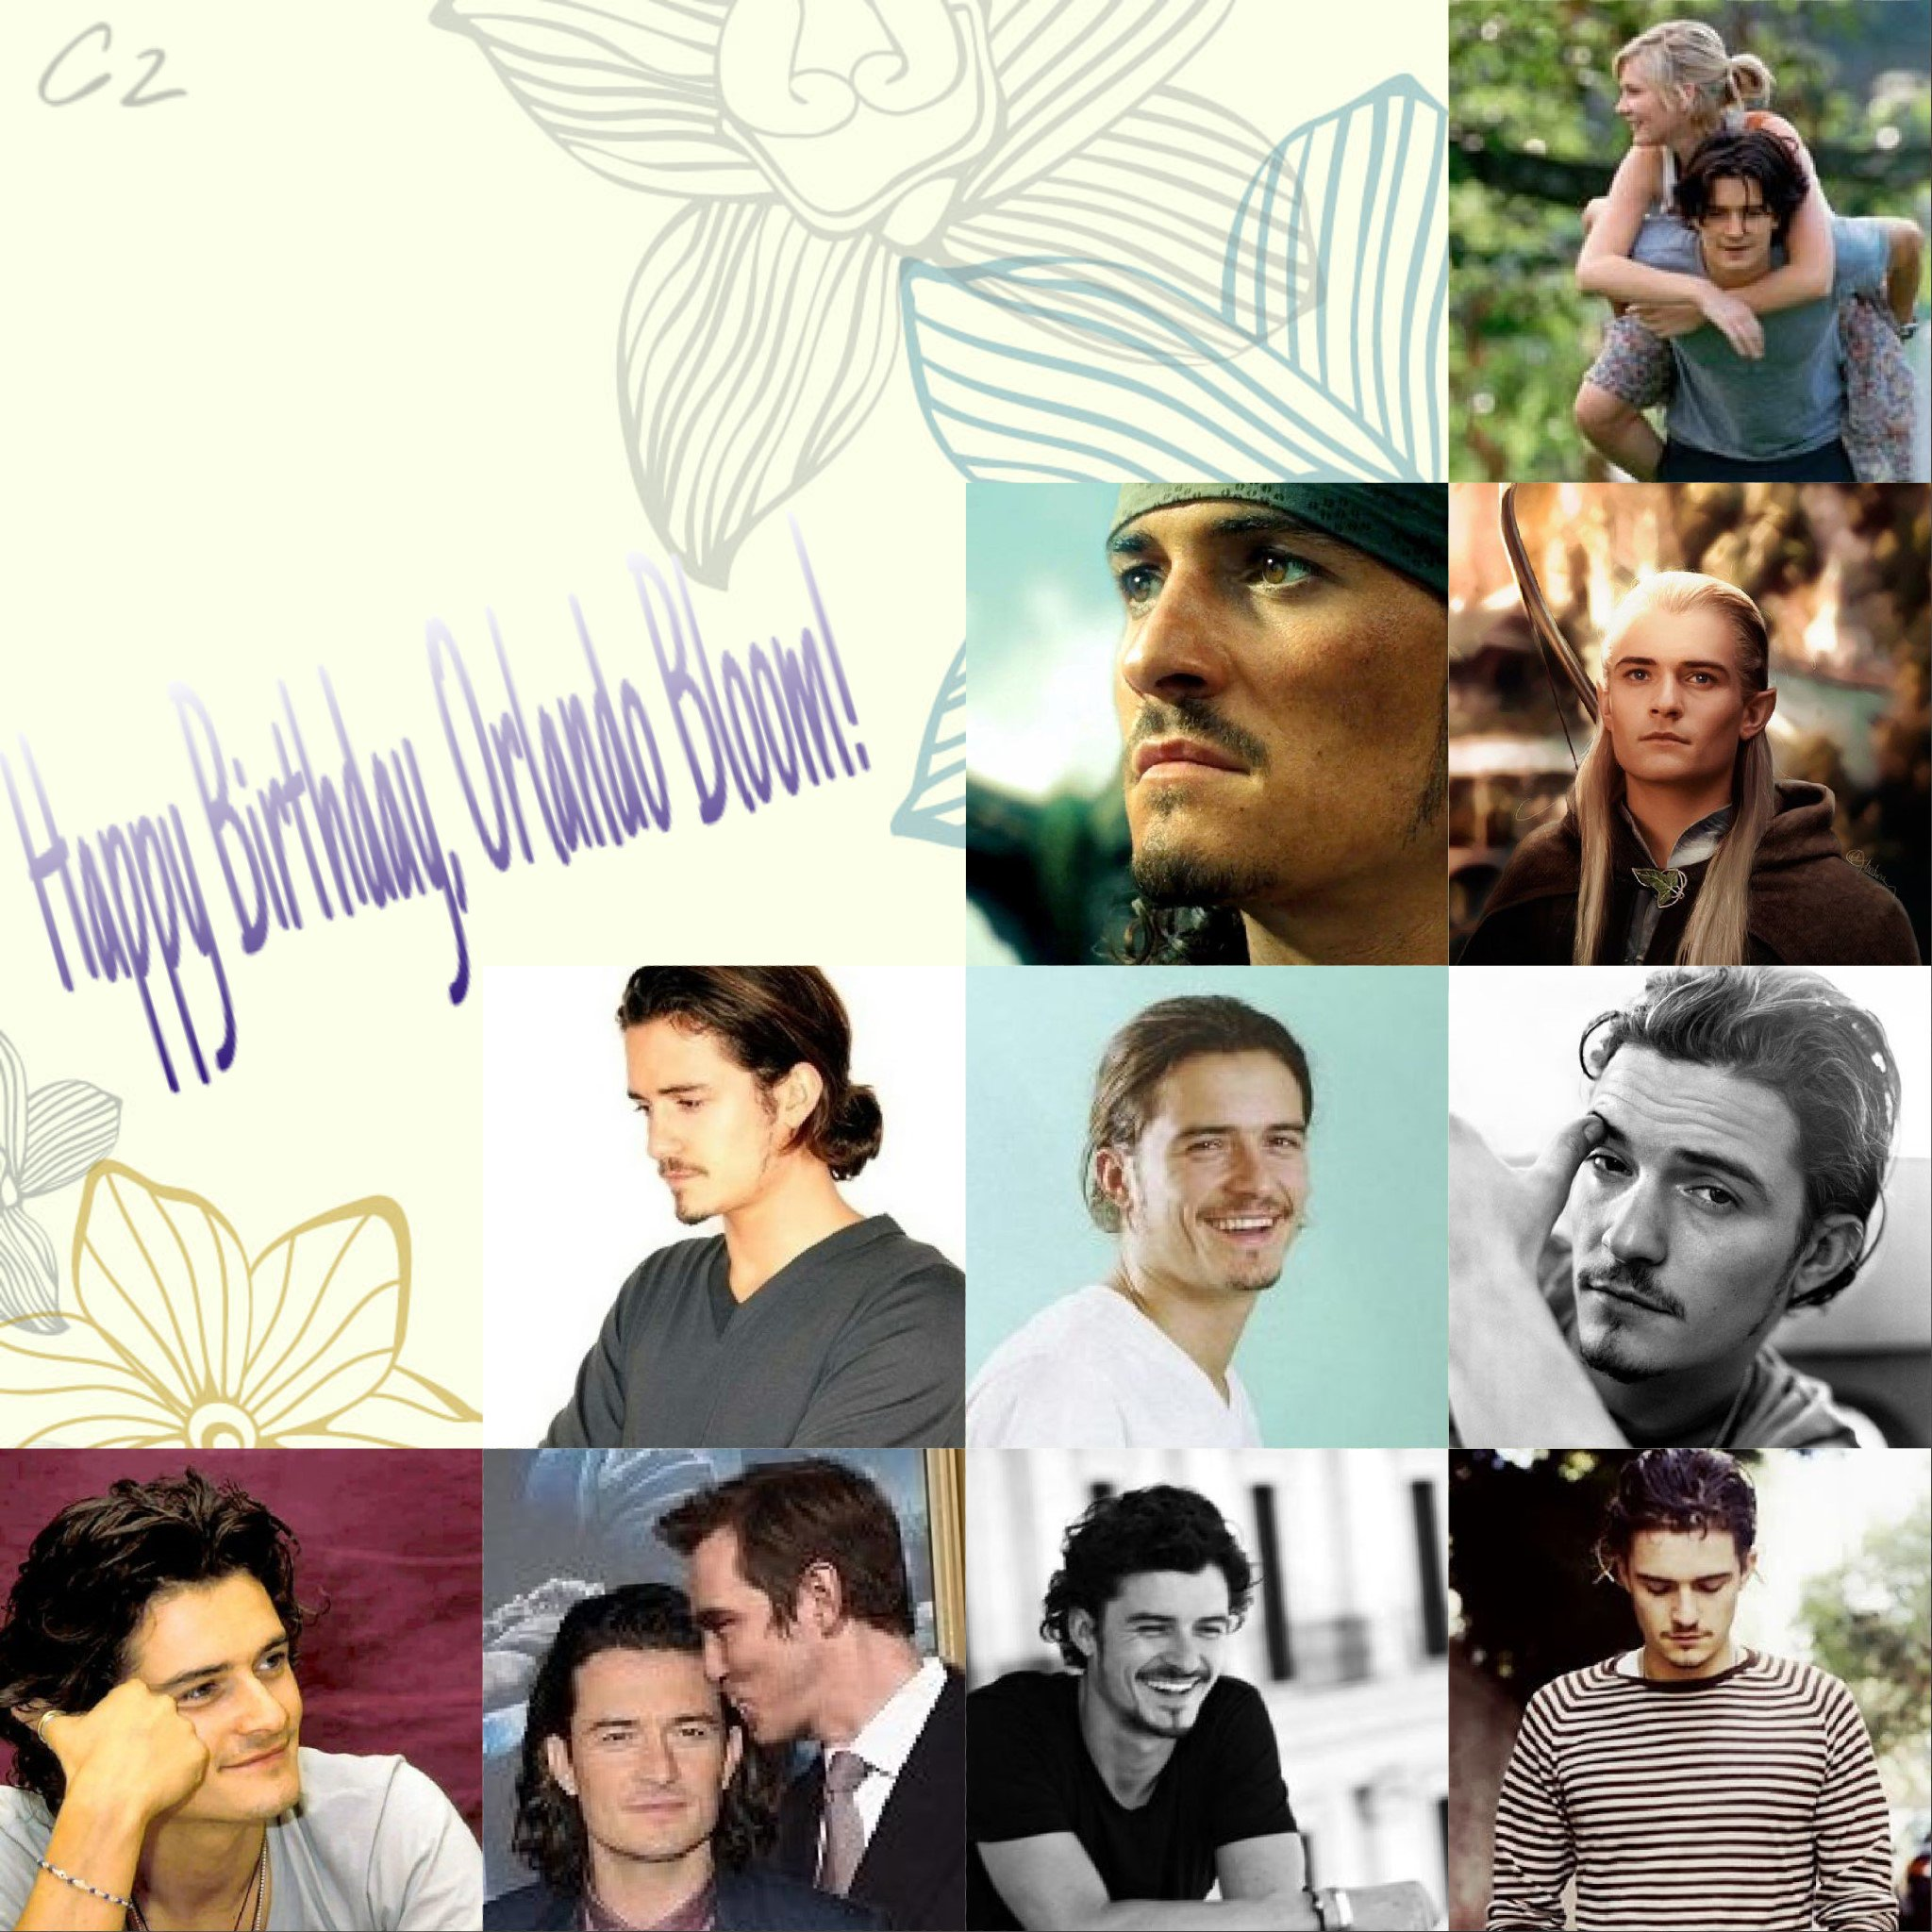 Happy Birthday, my beloved Orlando Bloom! 40 years old but still the best one